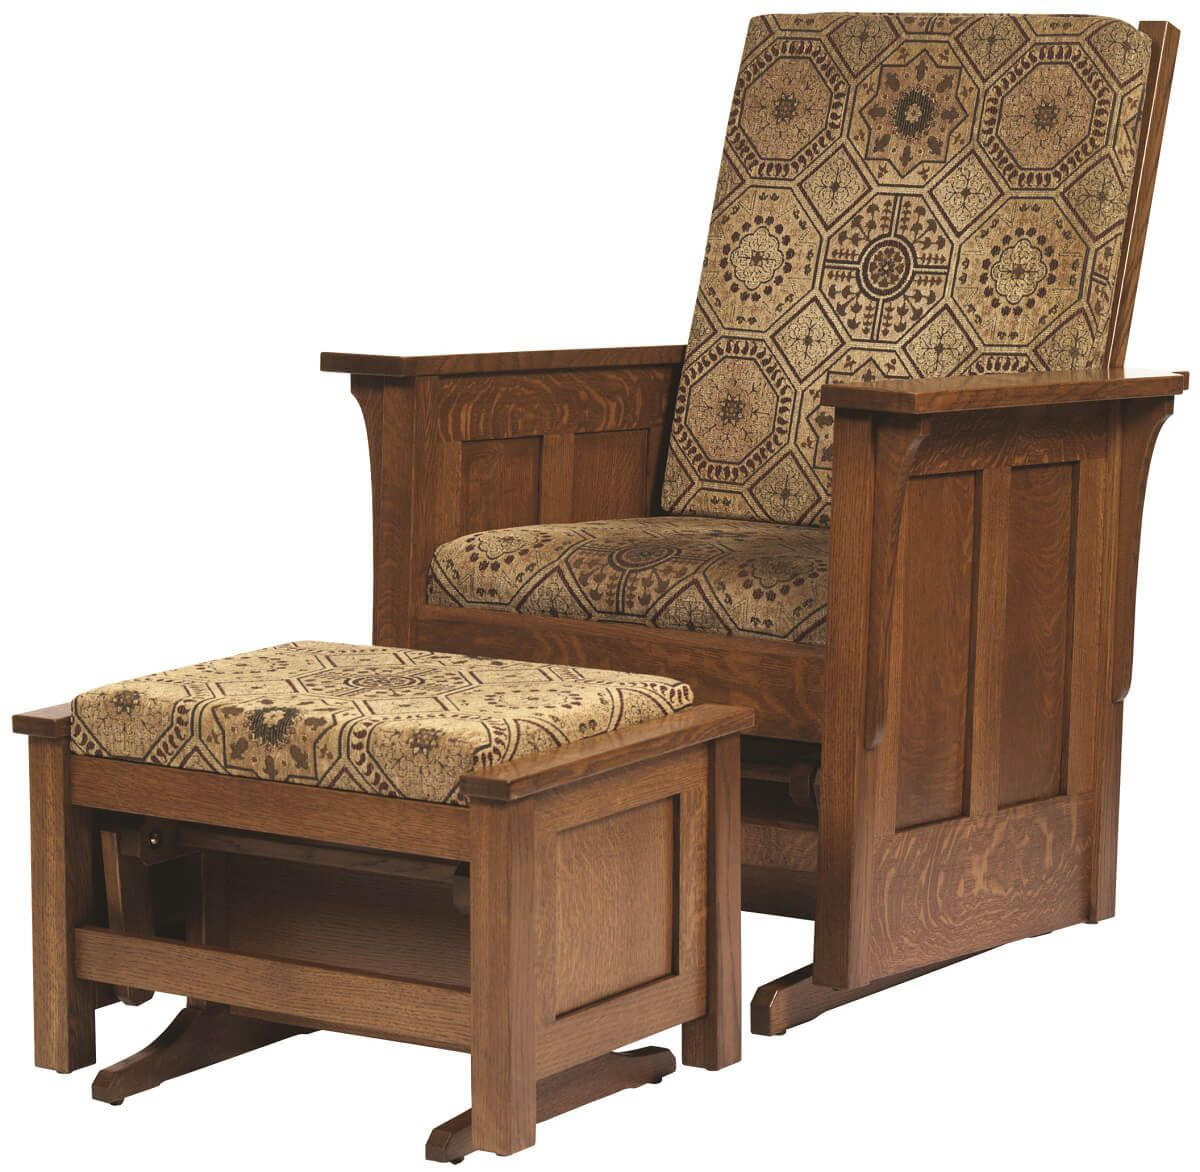 Colonial Cottage Glider and Ottoman